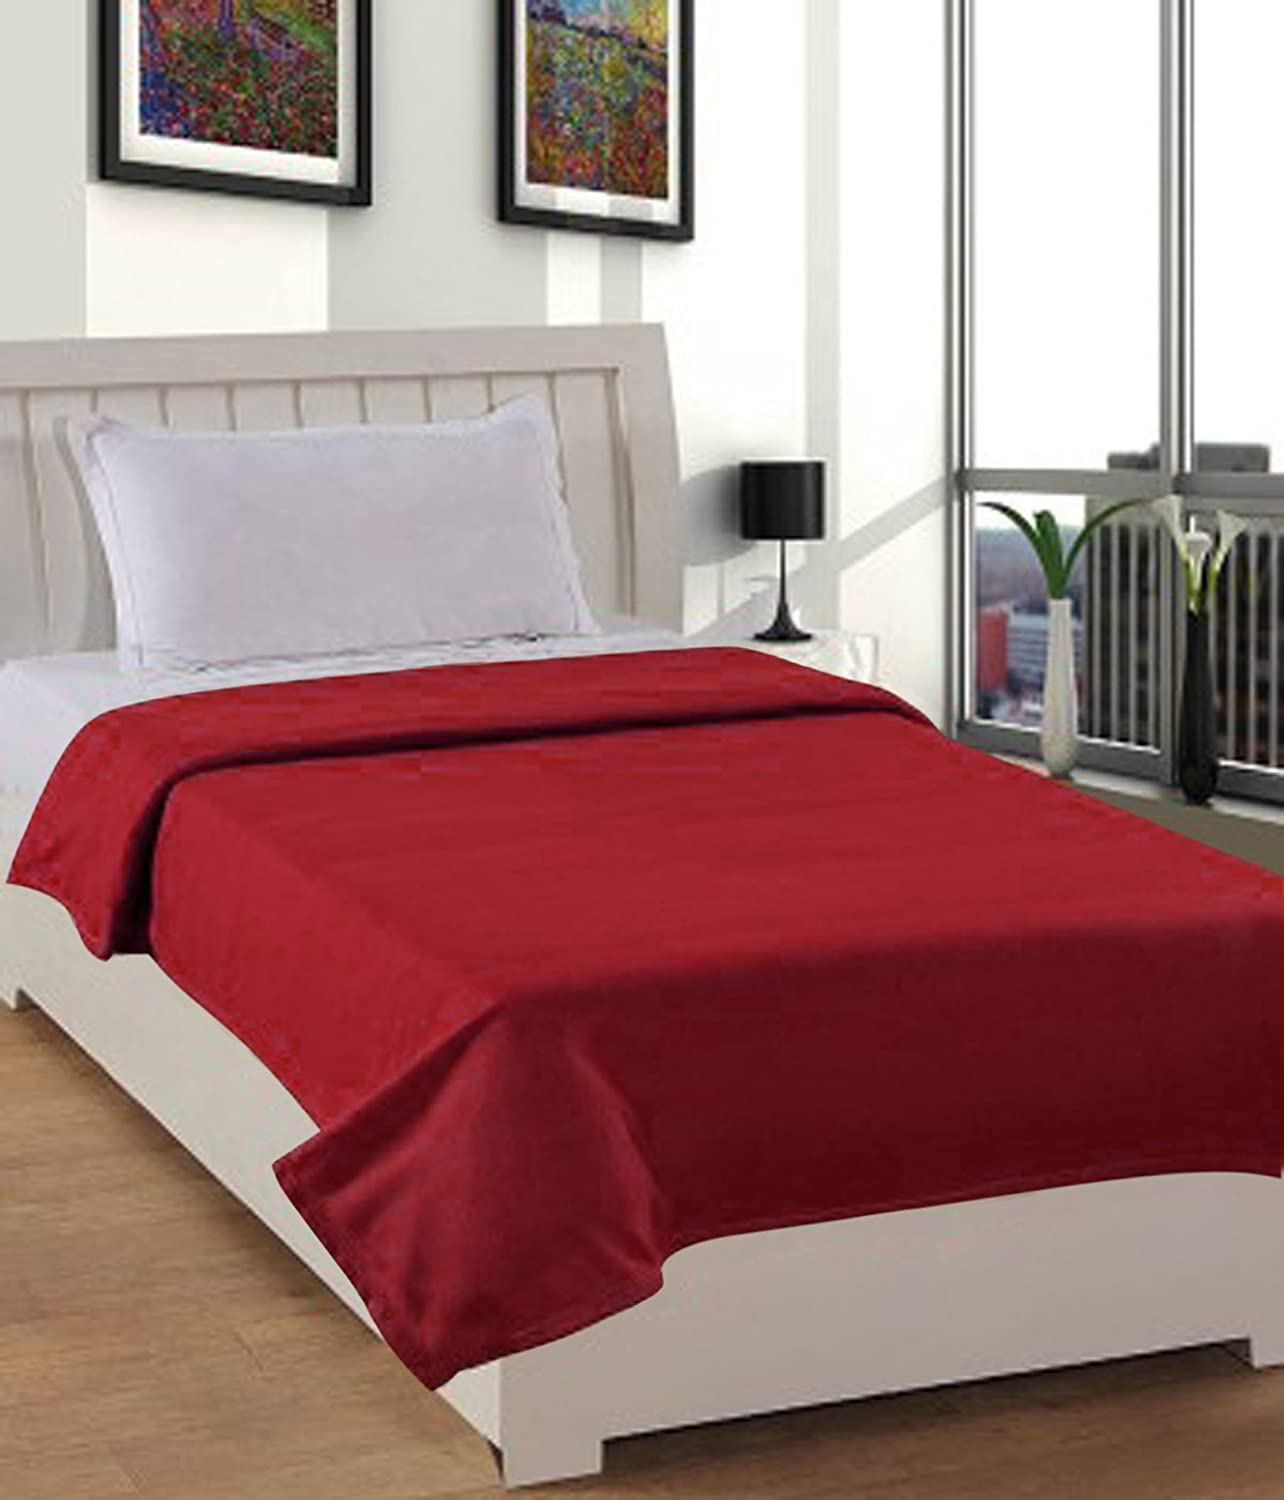 Warmland Fleece Solid Polyester Single Blanket - Red